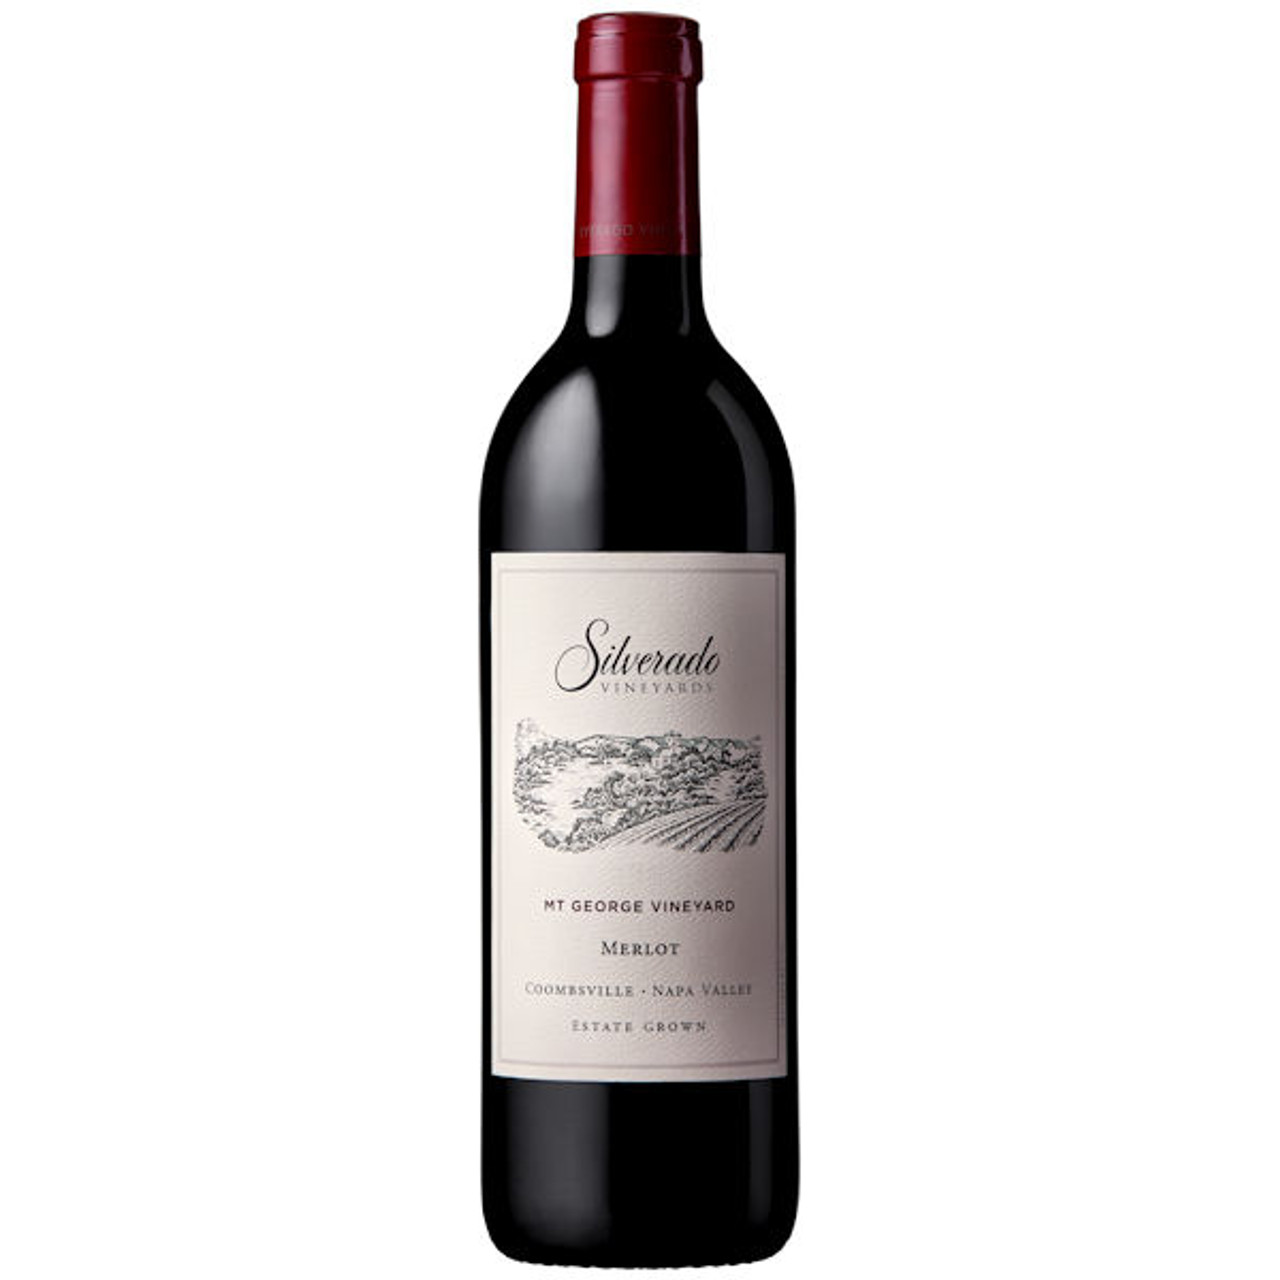 Silverado Mt George Vineyard Napa Merlot